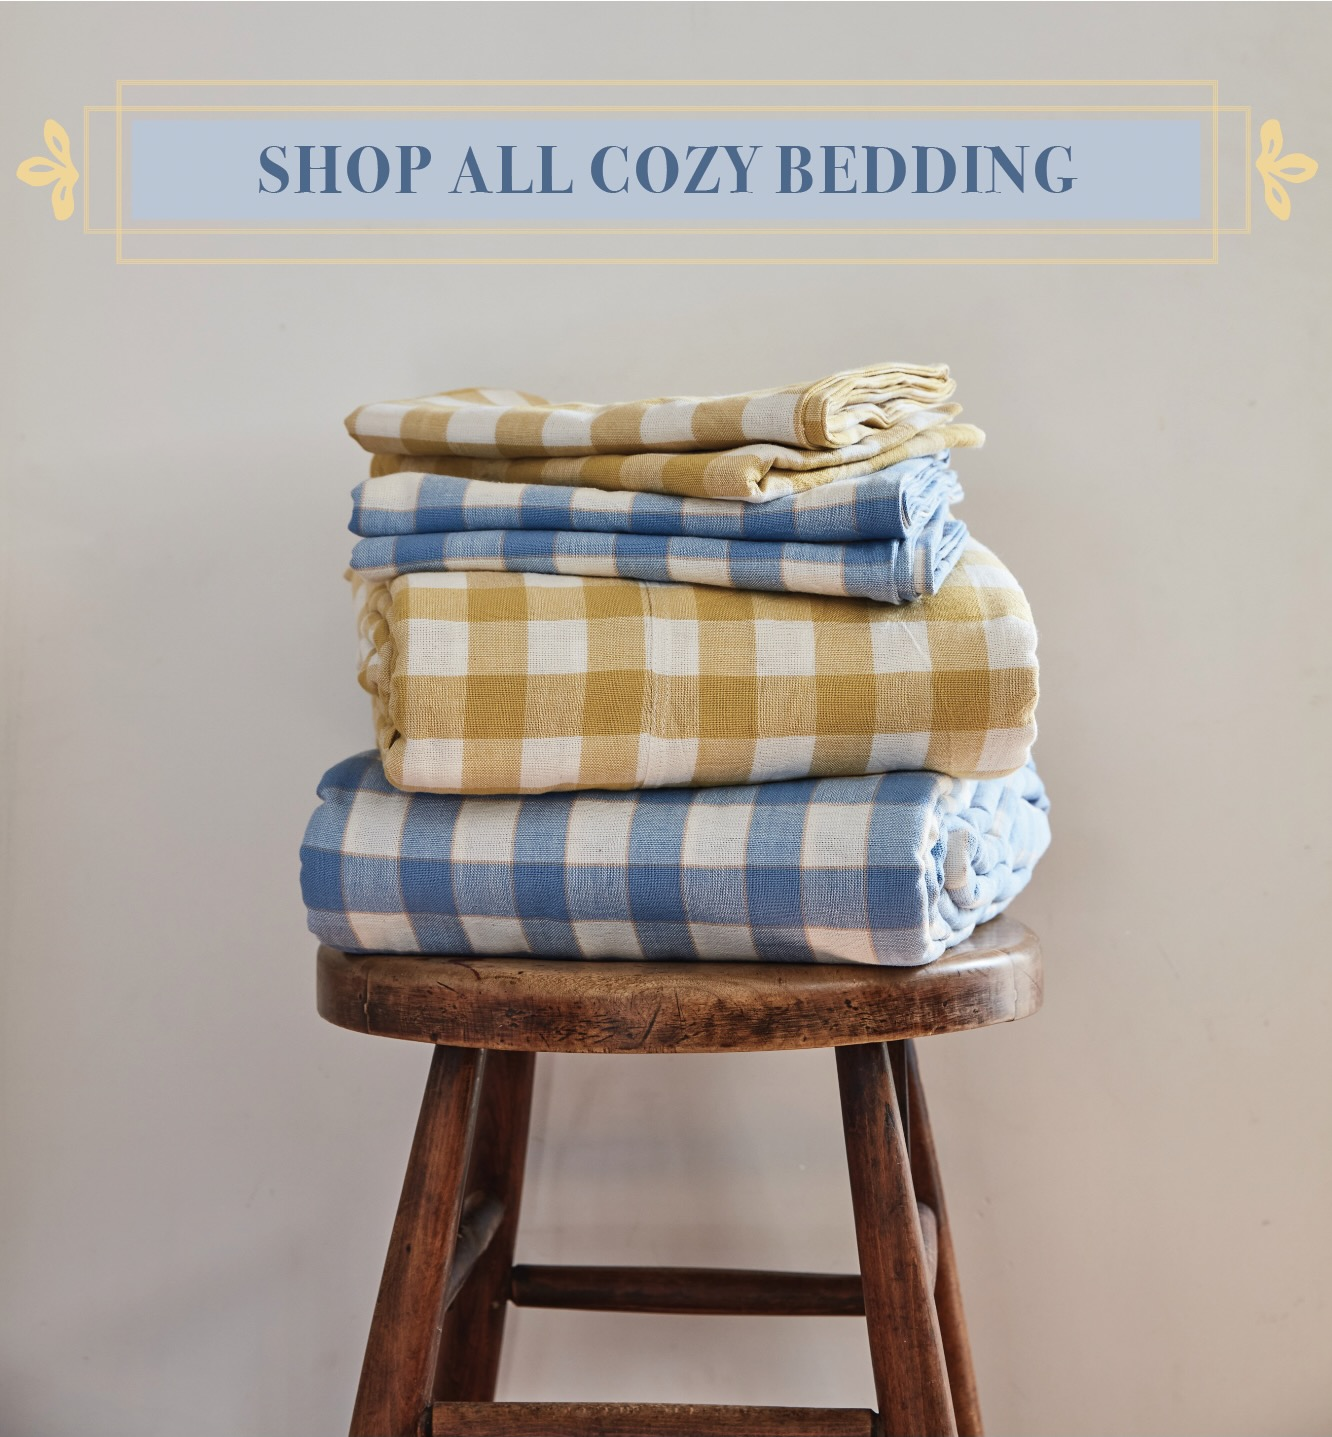 """Blue text with a yellow outline that reads: """"Shop all cozy bedding!"""" The text is overlaid on an image of bedding linens stacked on top of a wooden stool. The linens are sunflower yellow and white gingham duvet cover and pillowcases stacked together with matching blue and white gingham duvet cover and pillowcases."""